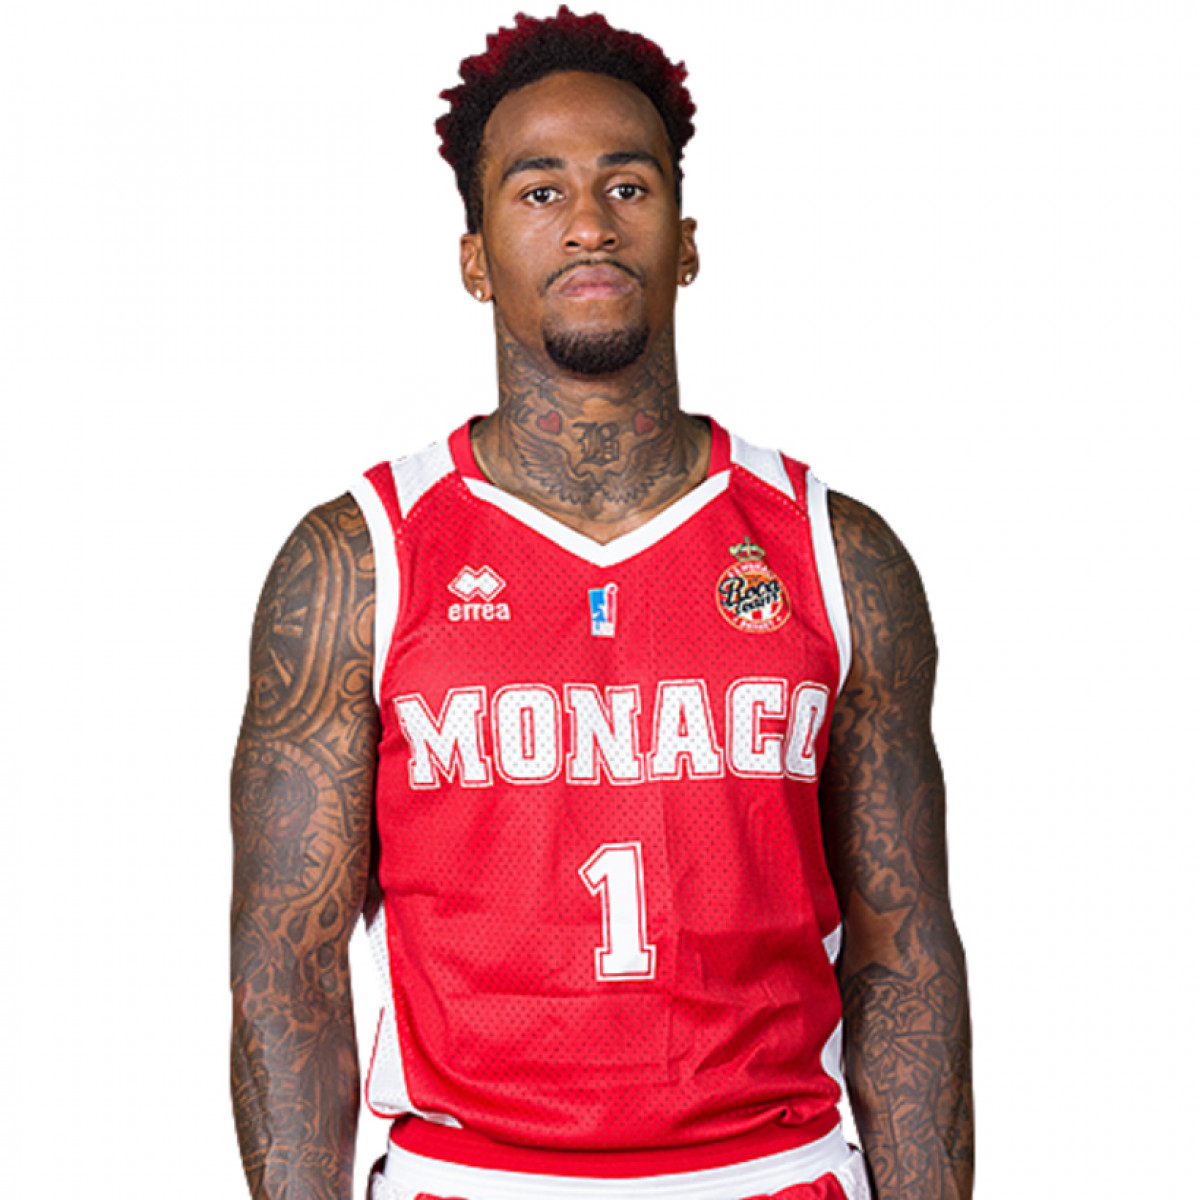 Photo of Dee Bost, 2019-2020 season